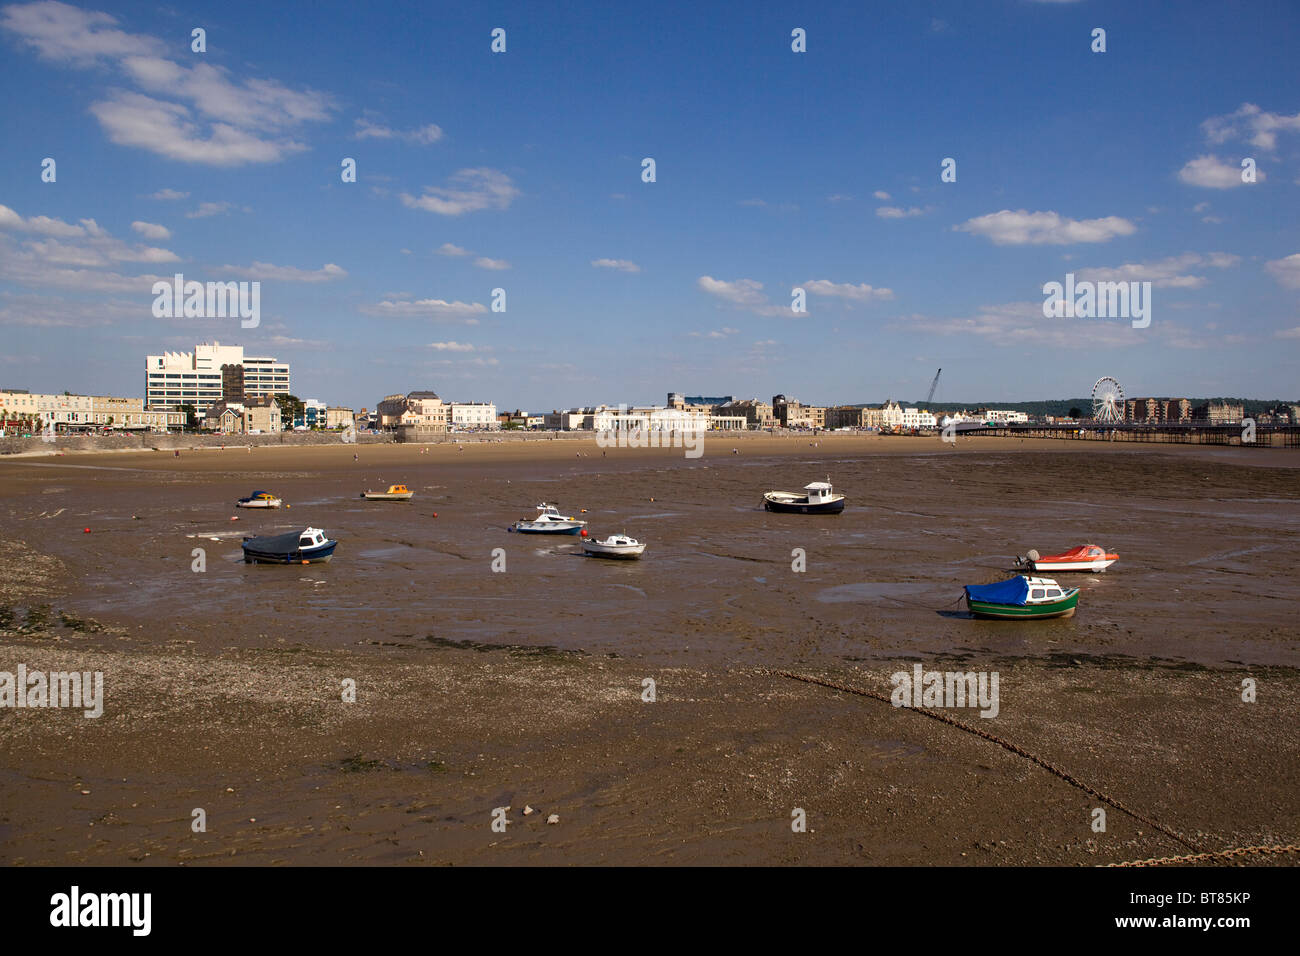 Beach with Tide out at Weston Super Mare - Stock Image